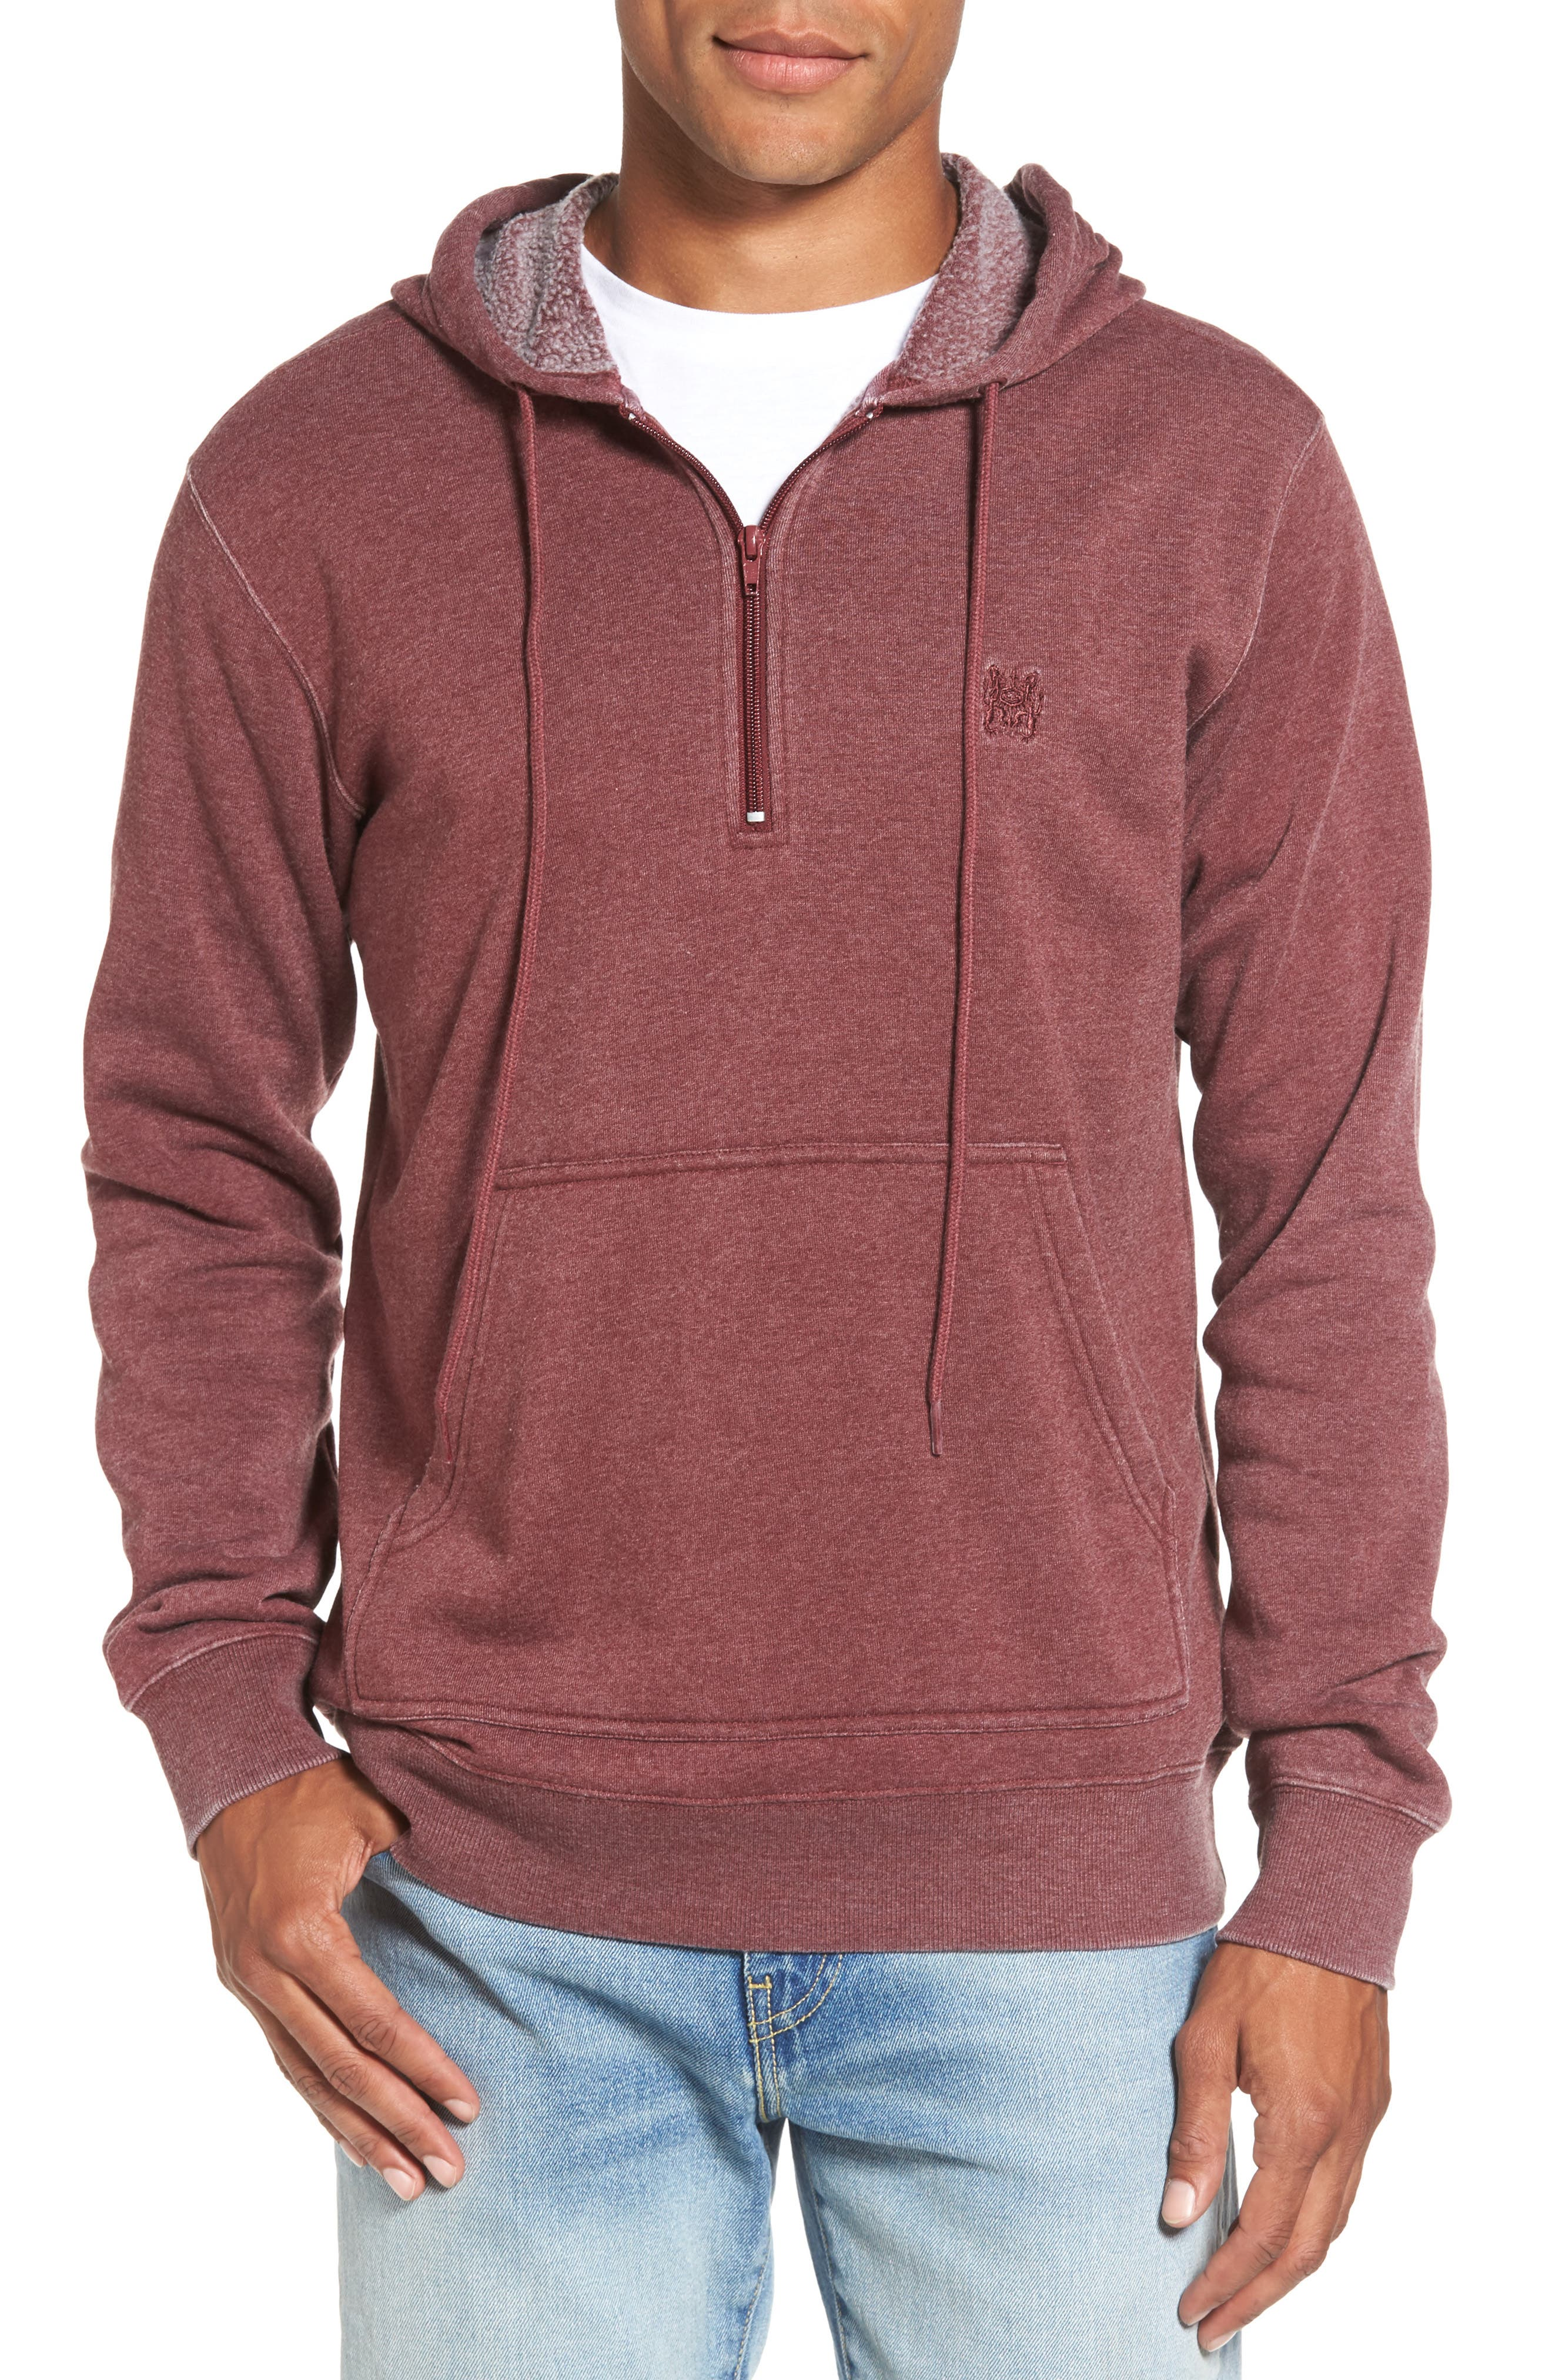 Sunwash Hoodie,                         Main,                         color, Tawny Port